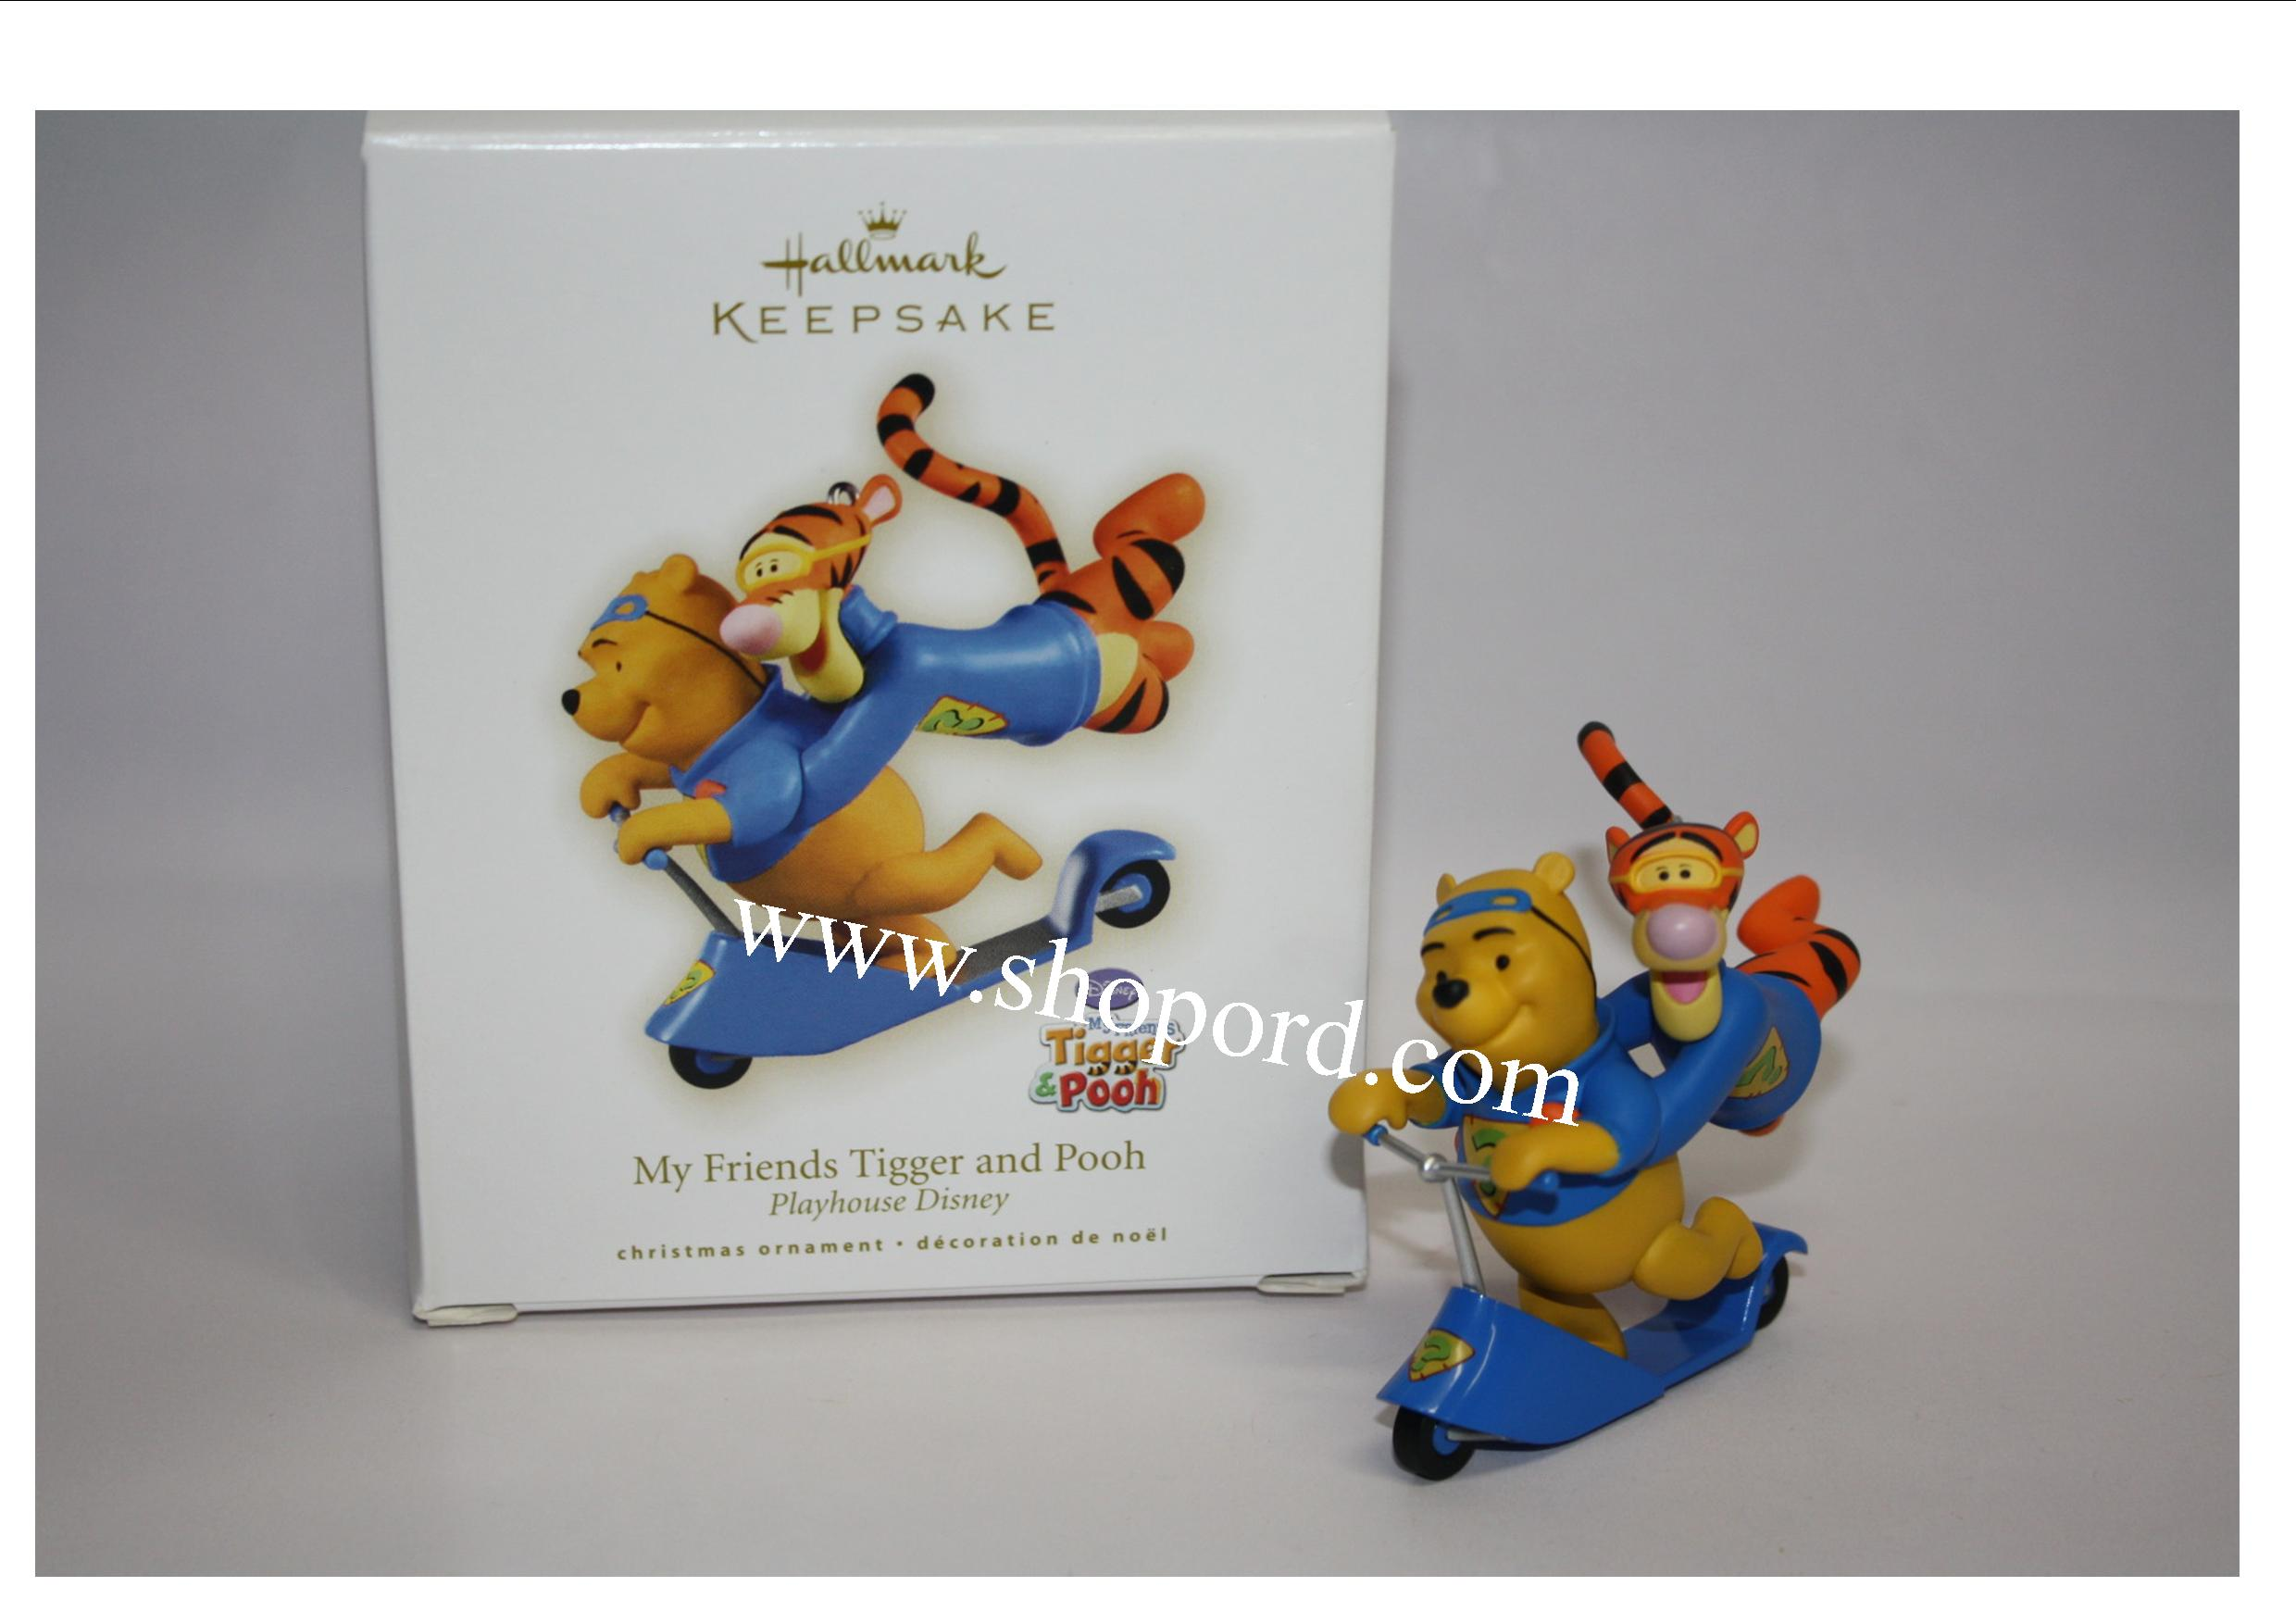 Hallmark 2009 My Friends Tigger And Pooh Ornament Disney Playhouse